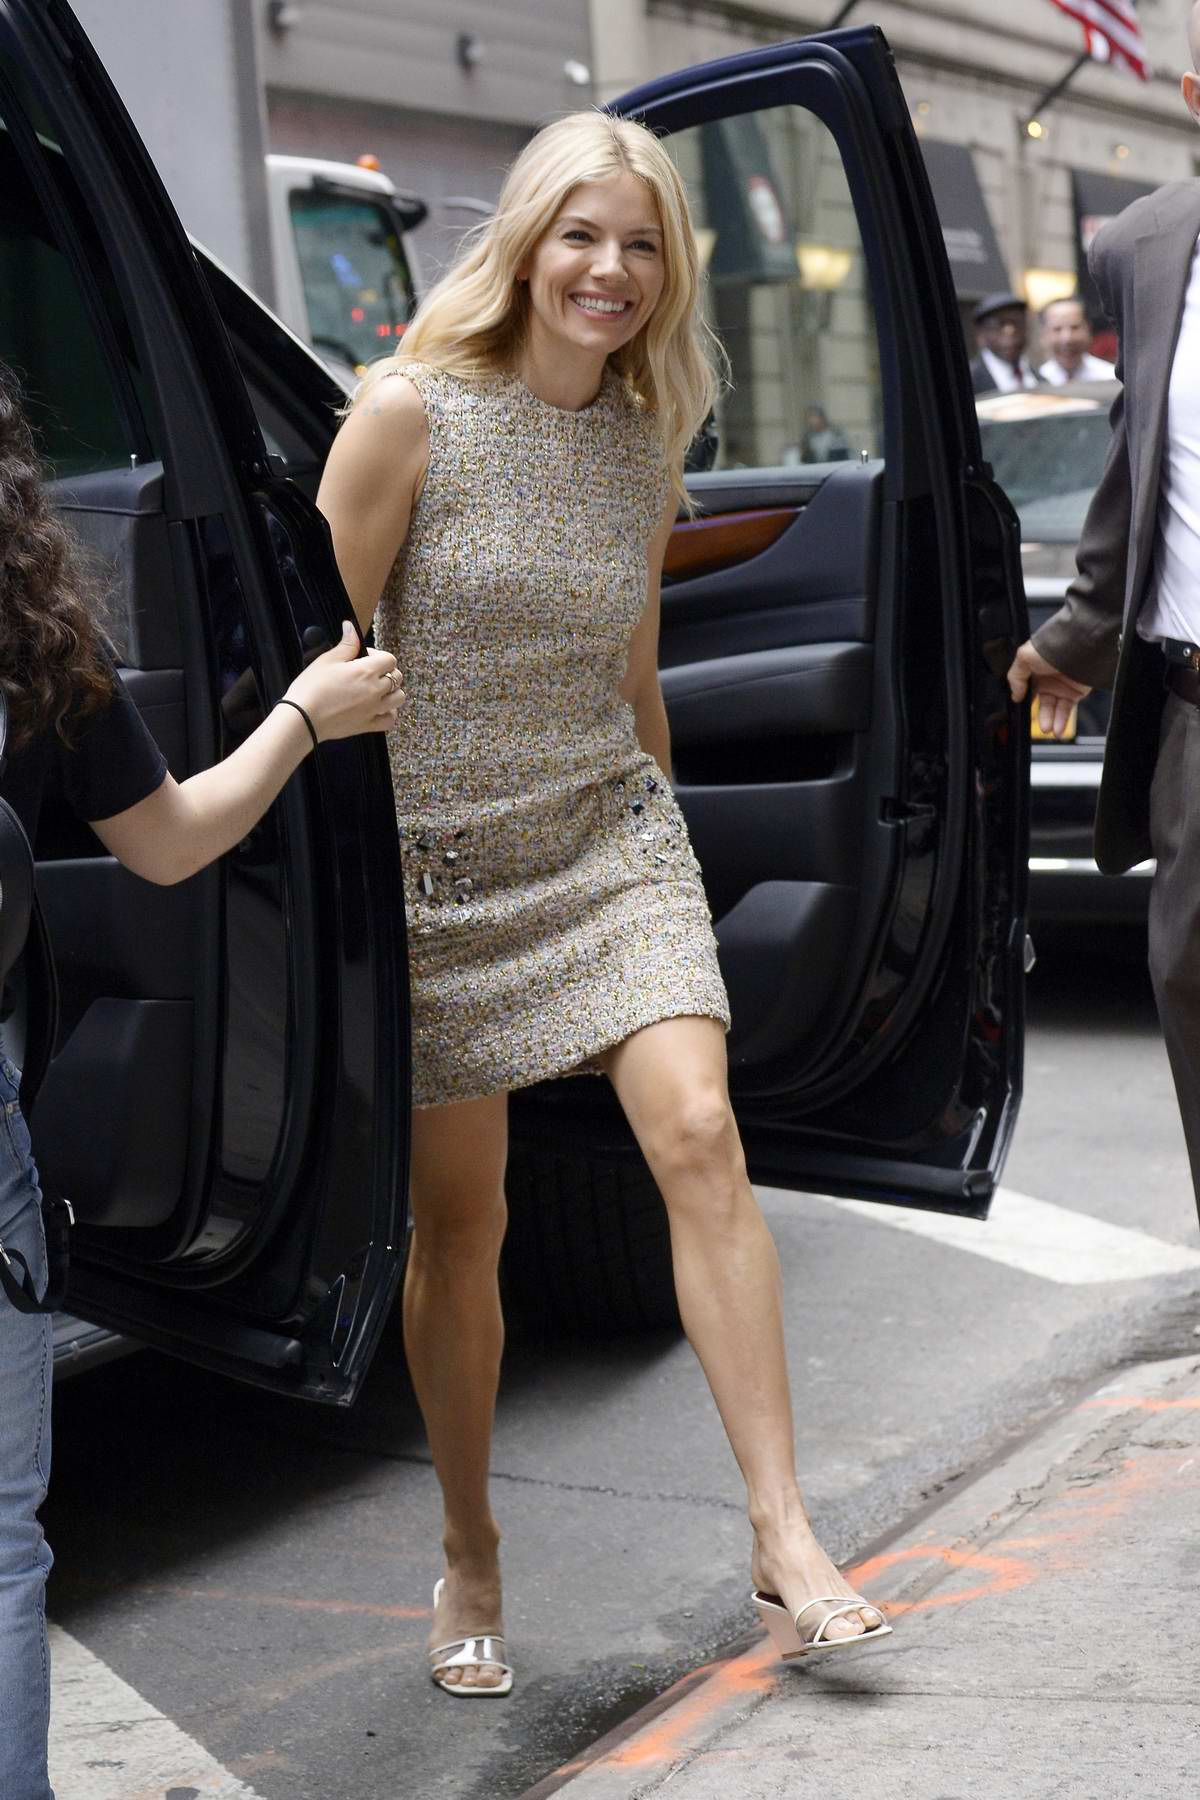 Sienna Miller is all smiles as she arrives at the Good Morning in New York City